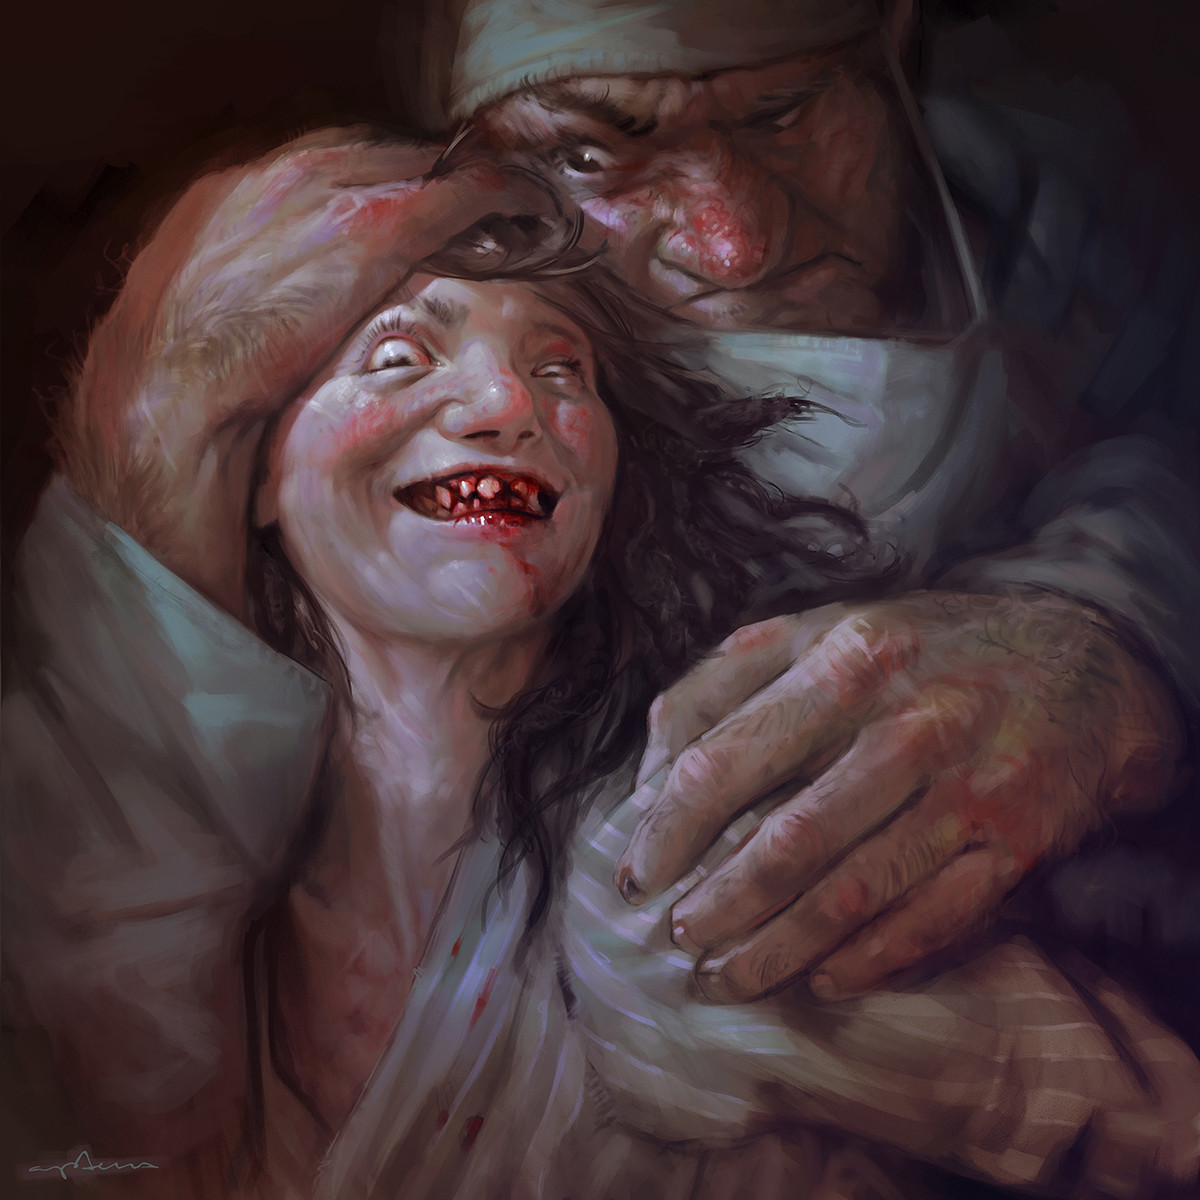 Sabbas Apterus illustration what a pretty smile